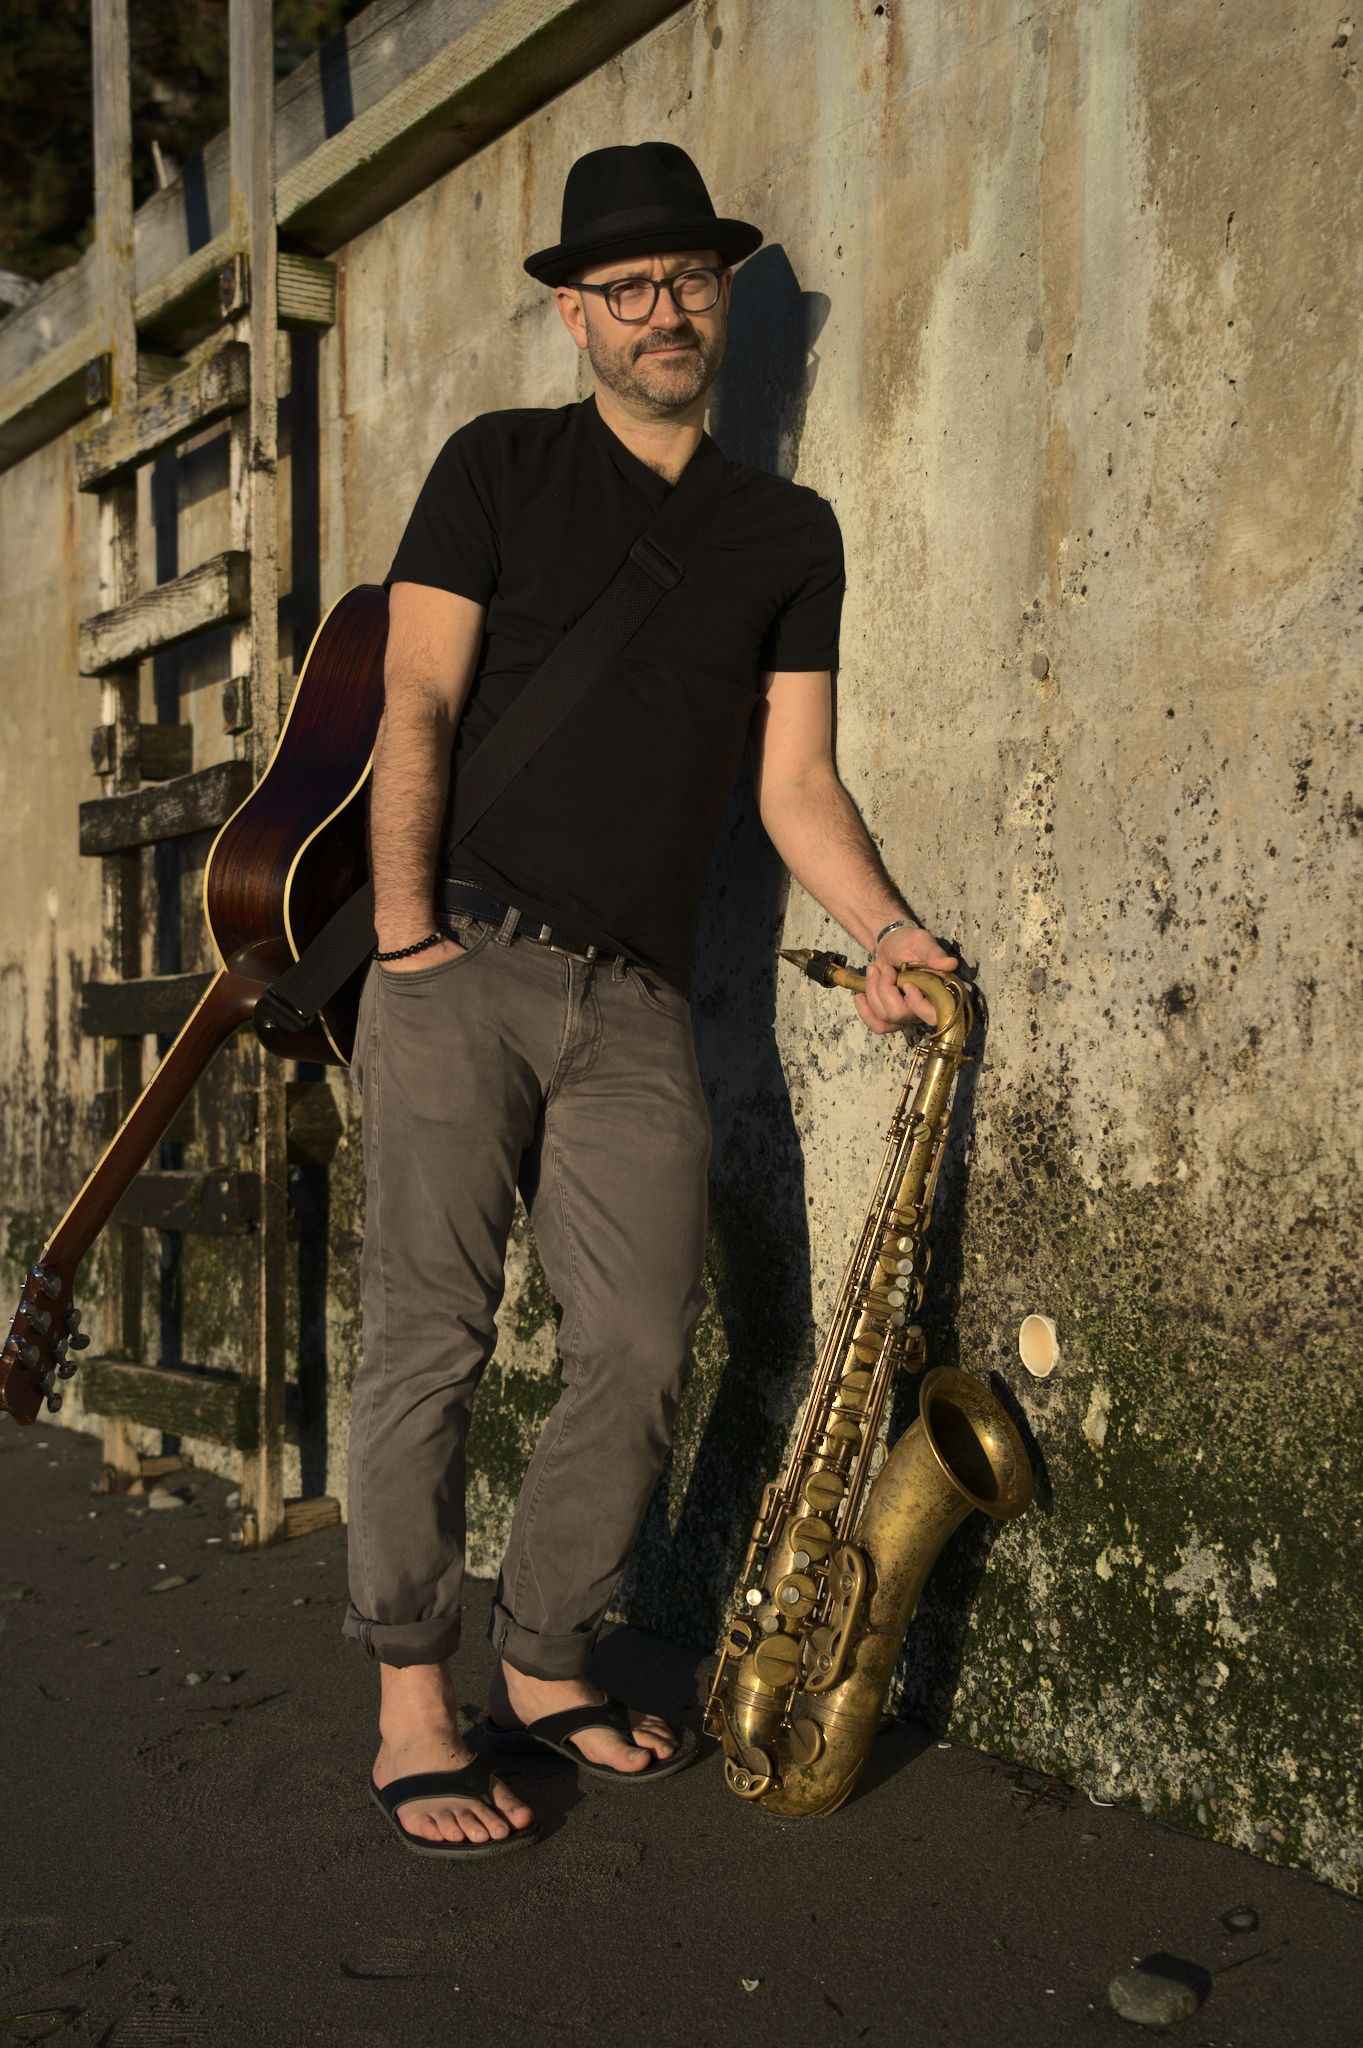 Trevor Ras with saxophone and guitar